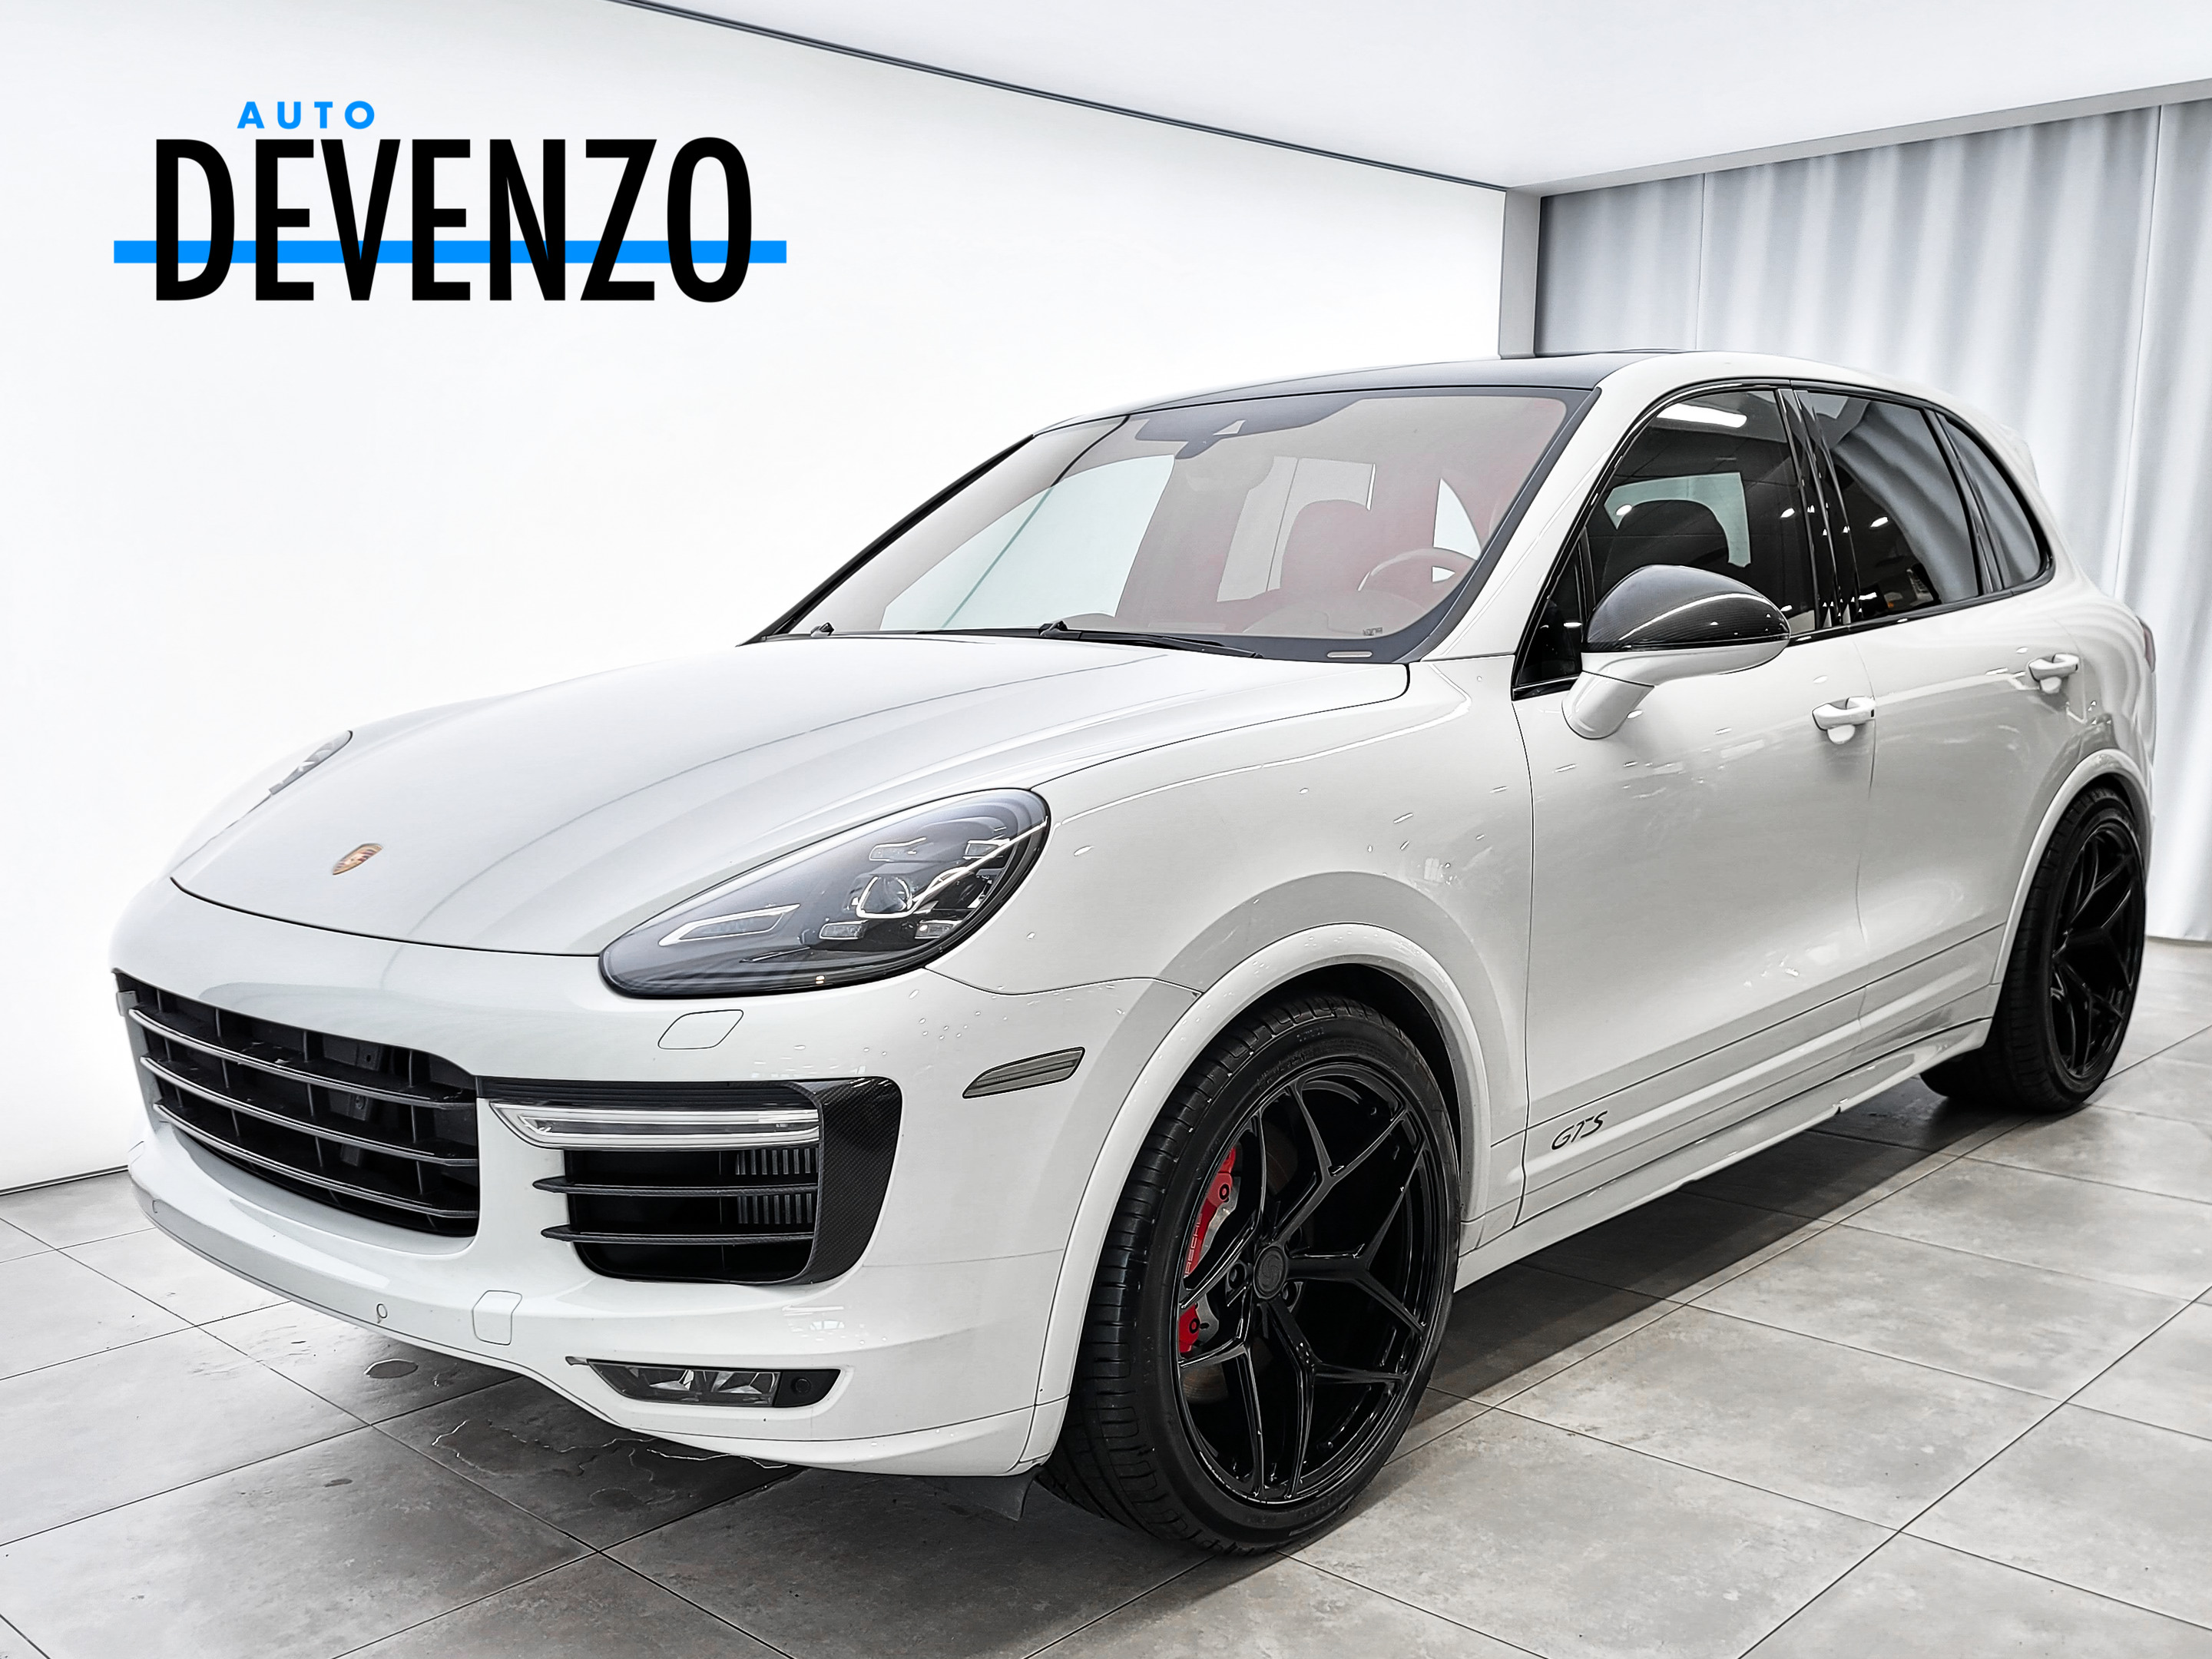 2016 Porsche Cayenne AWD GTS Lots of Upgrades / Android Touchscreen complet